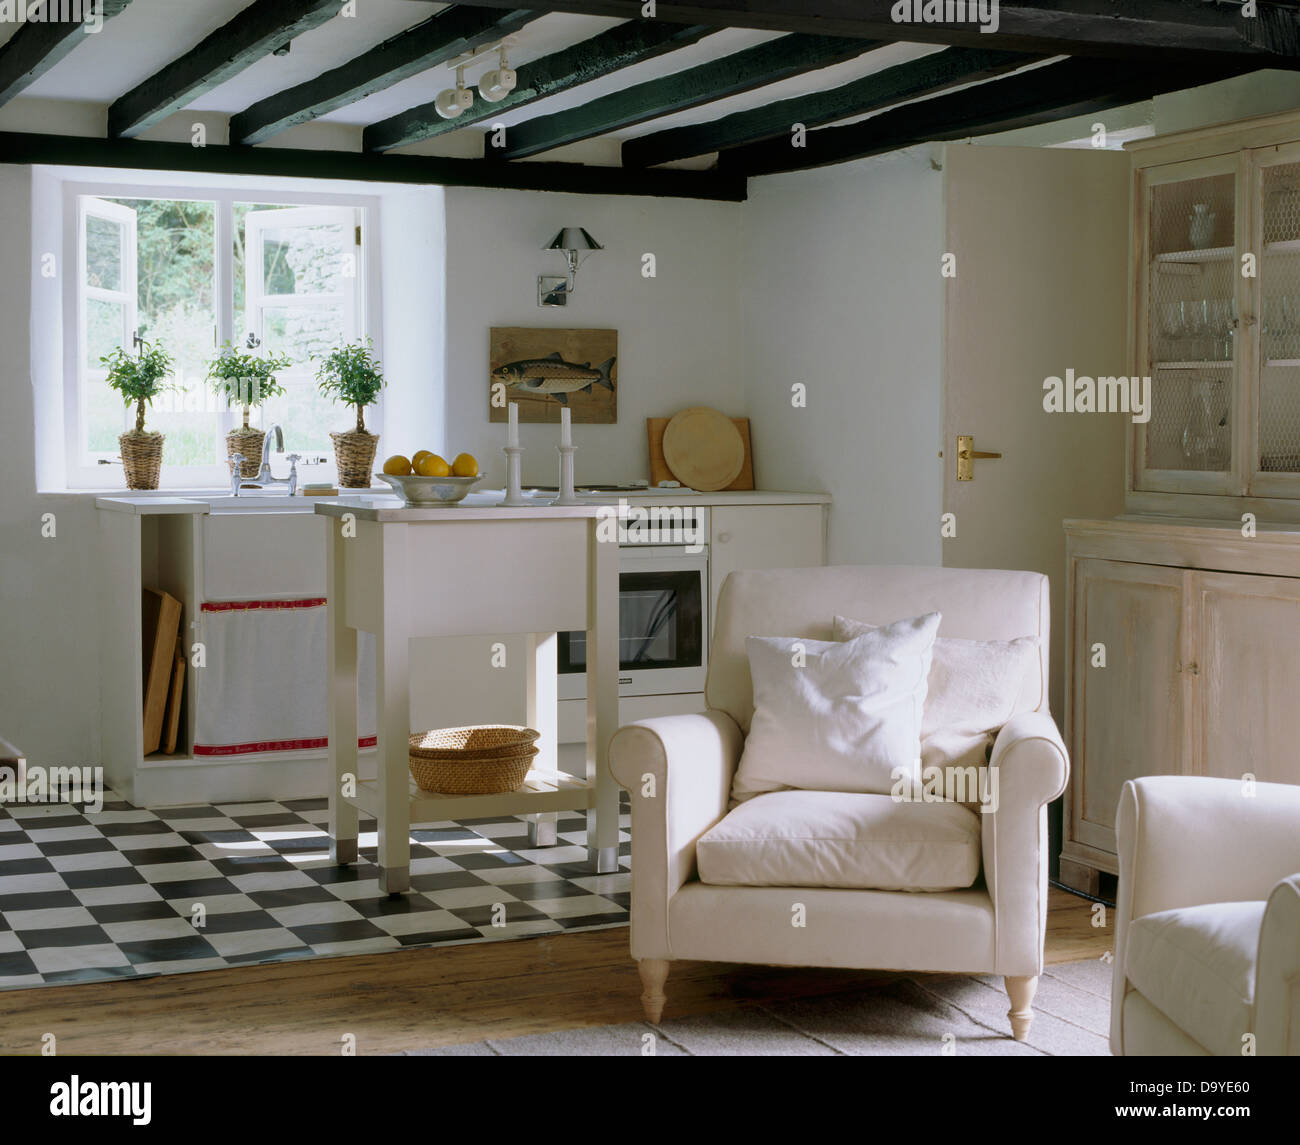 blackwhite-tiled-floor-in-white-country-cottage-kitchen-open-to-a-D9YE60